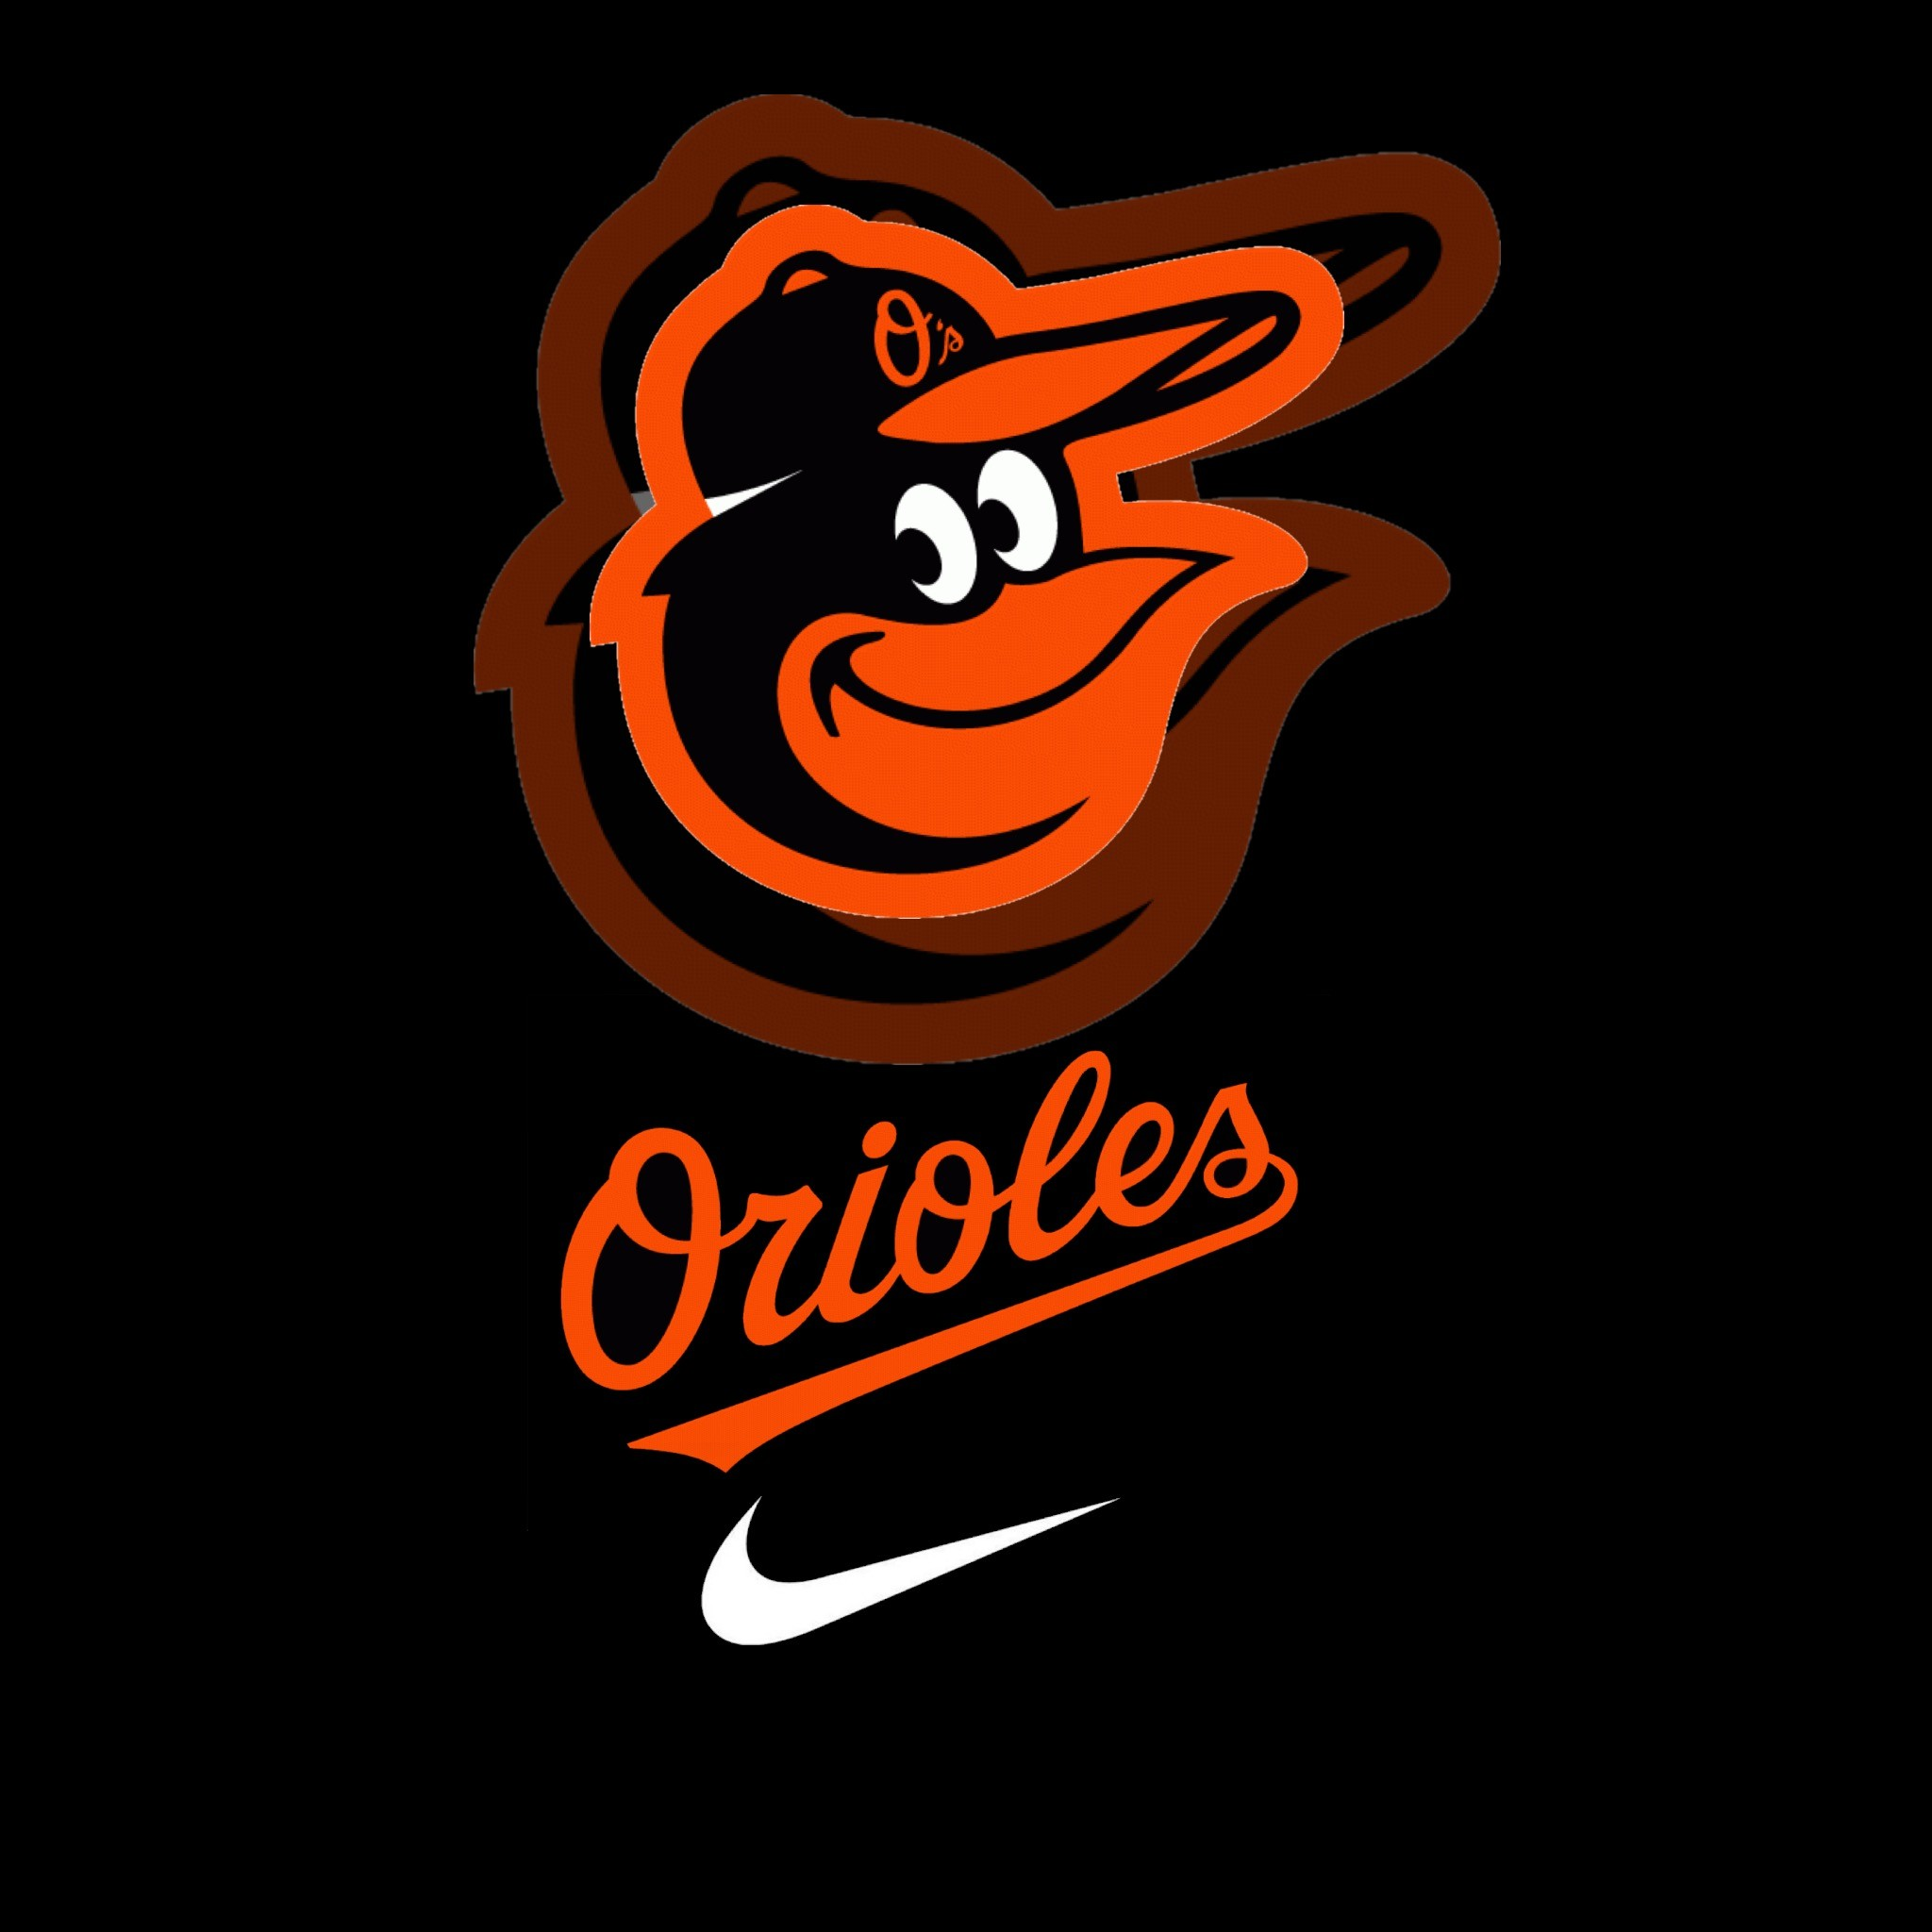 Baltimore Wallpaper: Ravens And Orioles Wallpaper (64+ Images